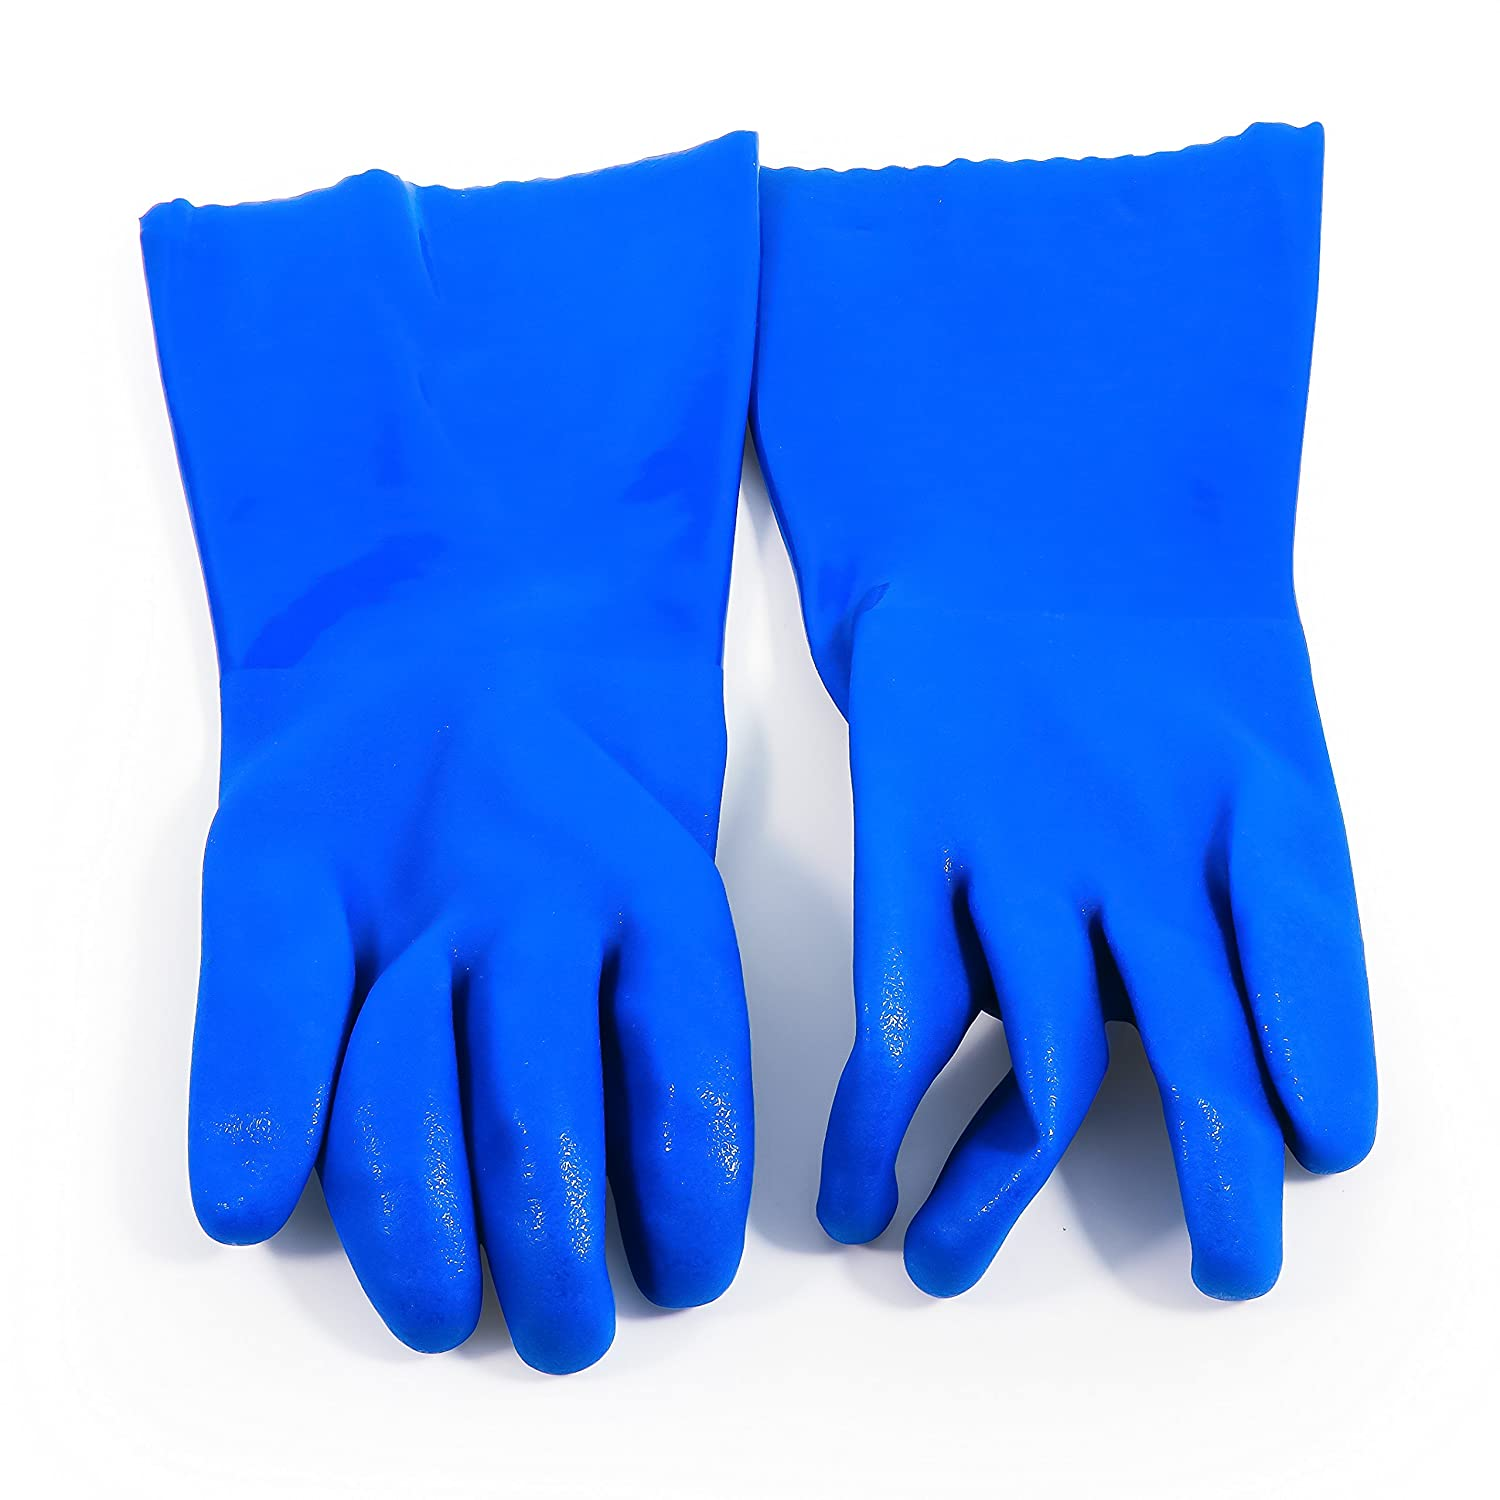 Camco Durable All Purpose RV Disposable Sanitation Gloves, Will Grip in Wet or Dry Conditions, Latex and Powder Free , Heavy Duty Nitrile- Green (100 Gloves) (40286) 40285